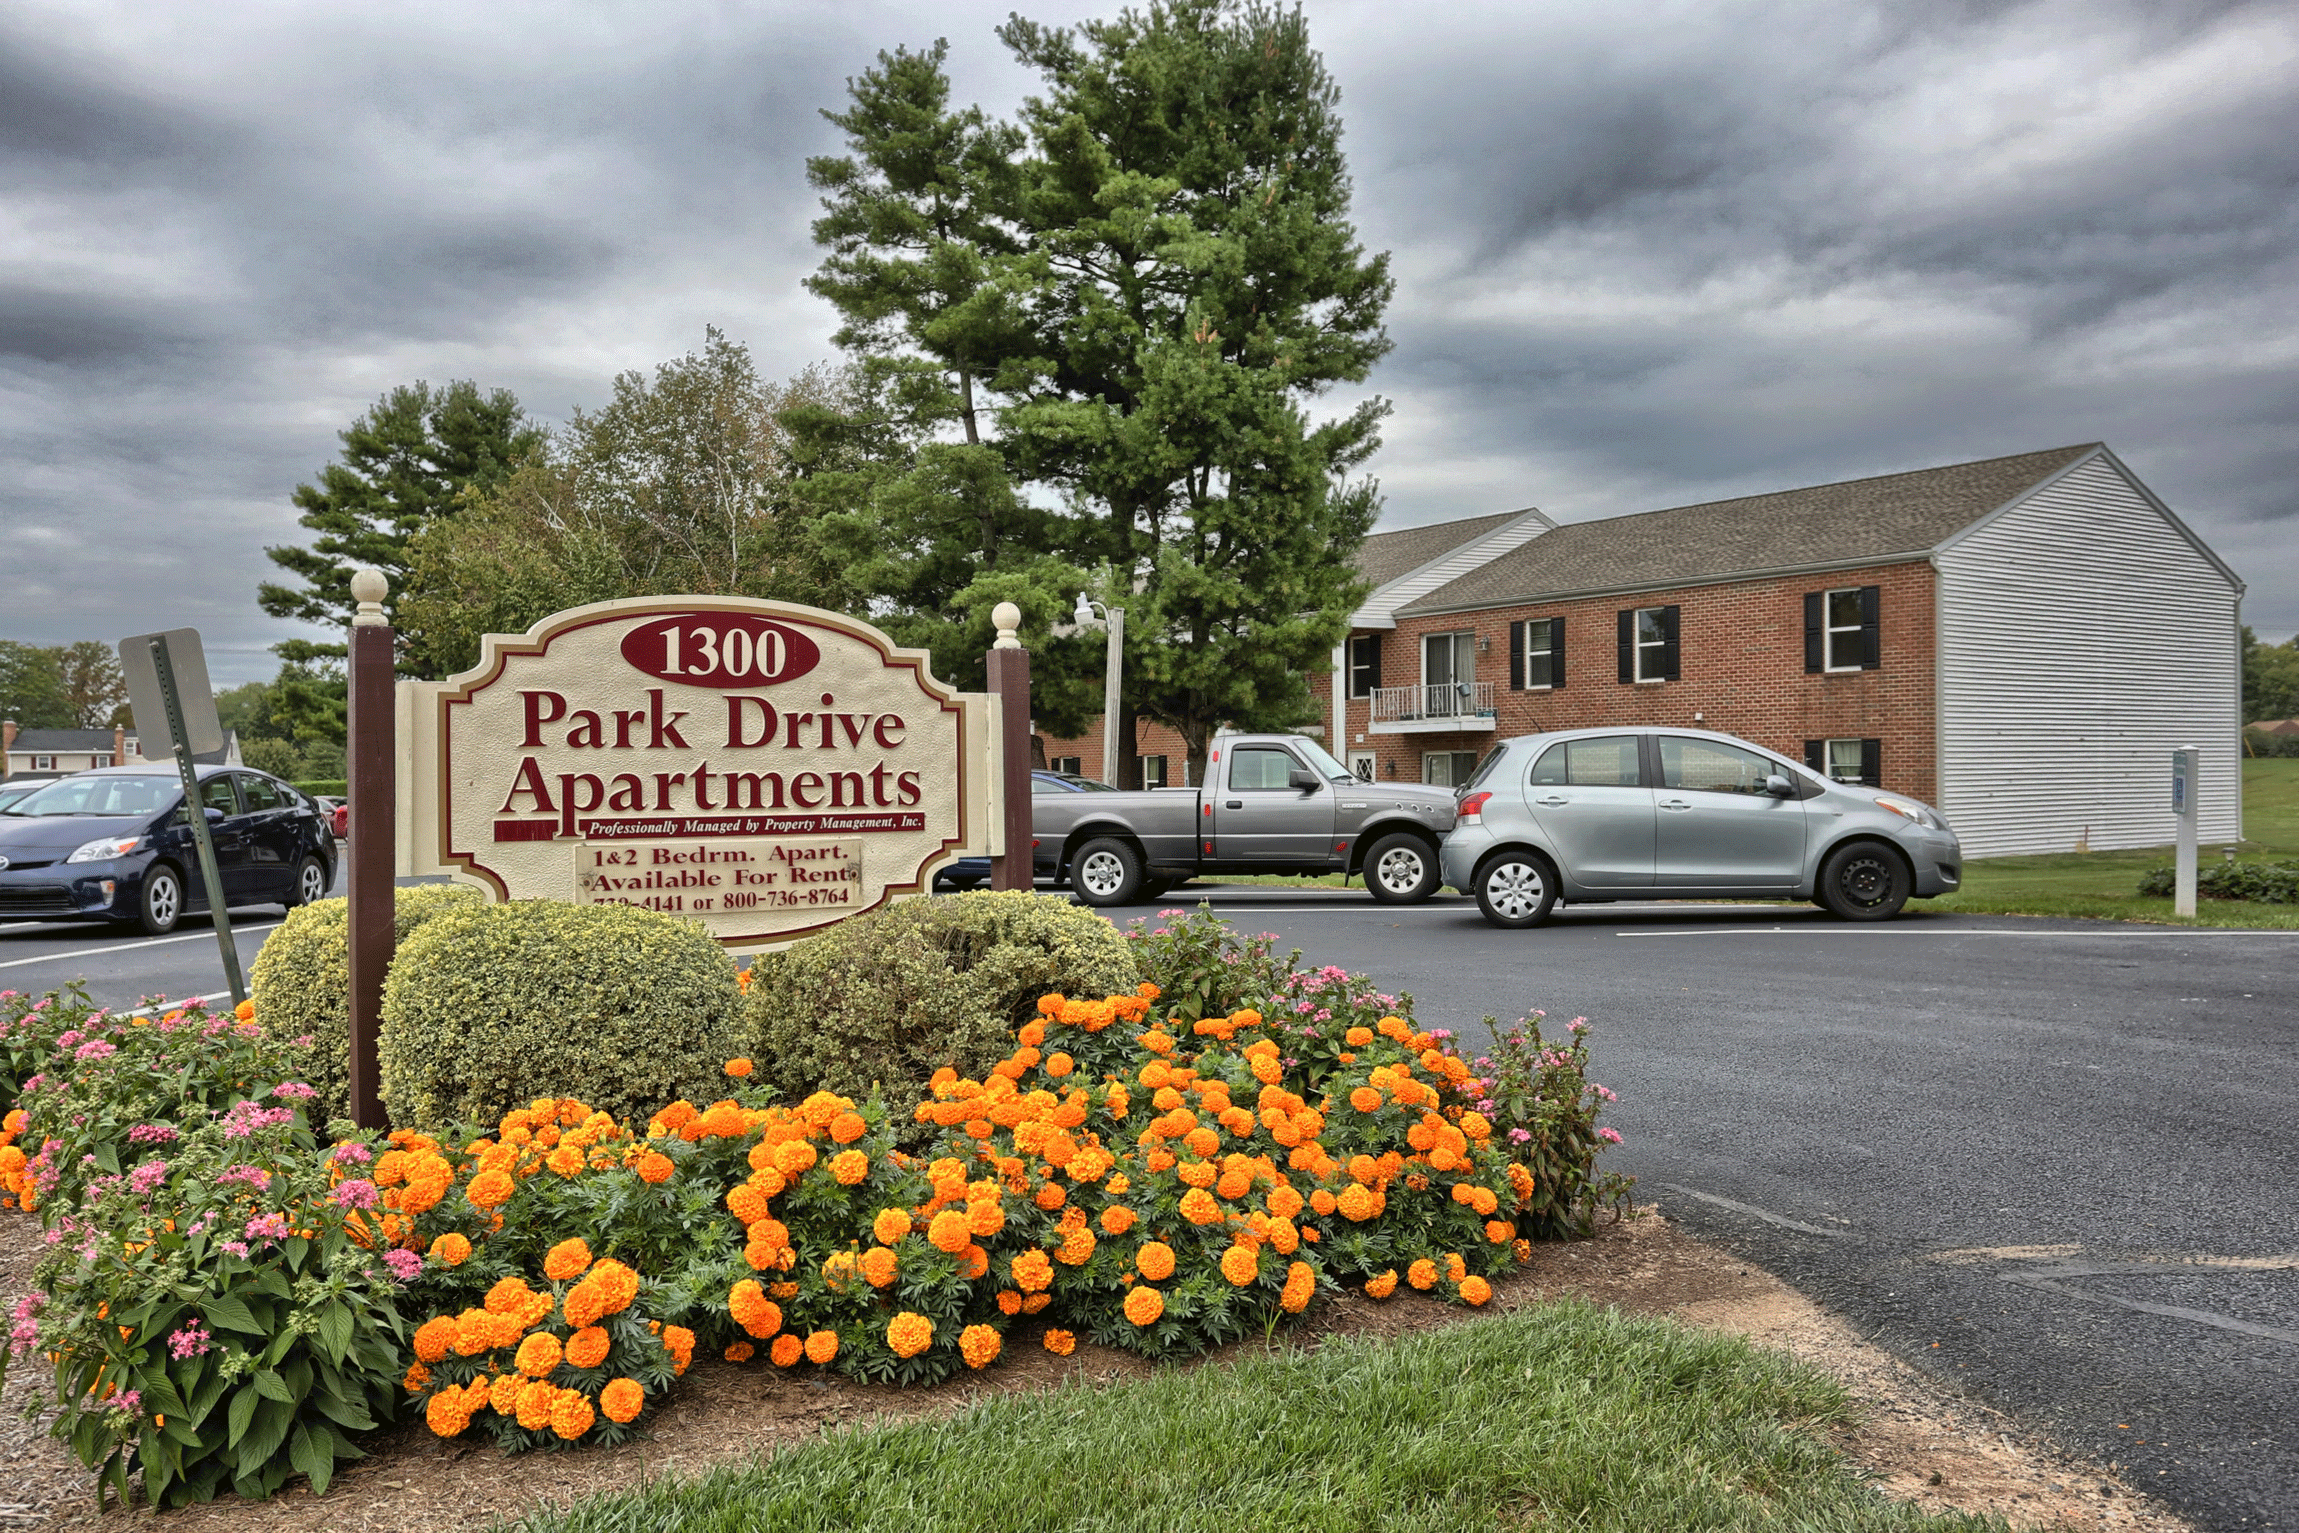 Apartments in Palmyra, PA | Park Drive Apartments | Property Management, Inc.